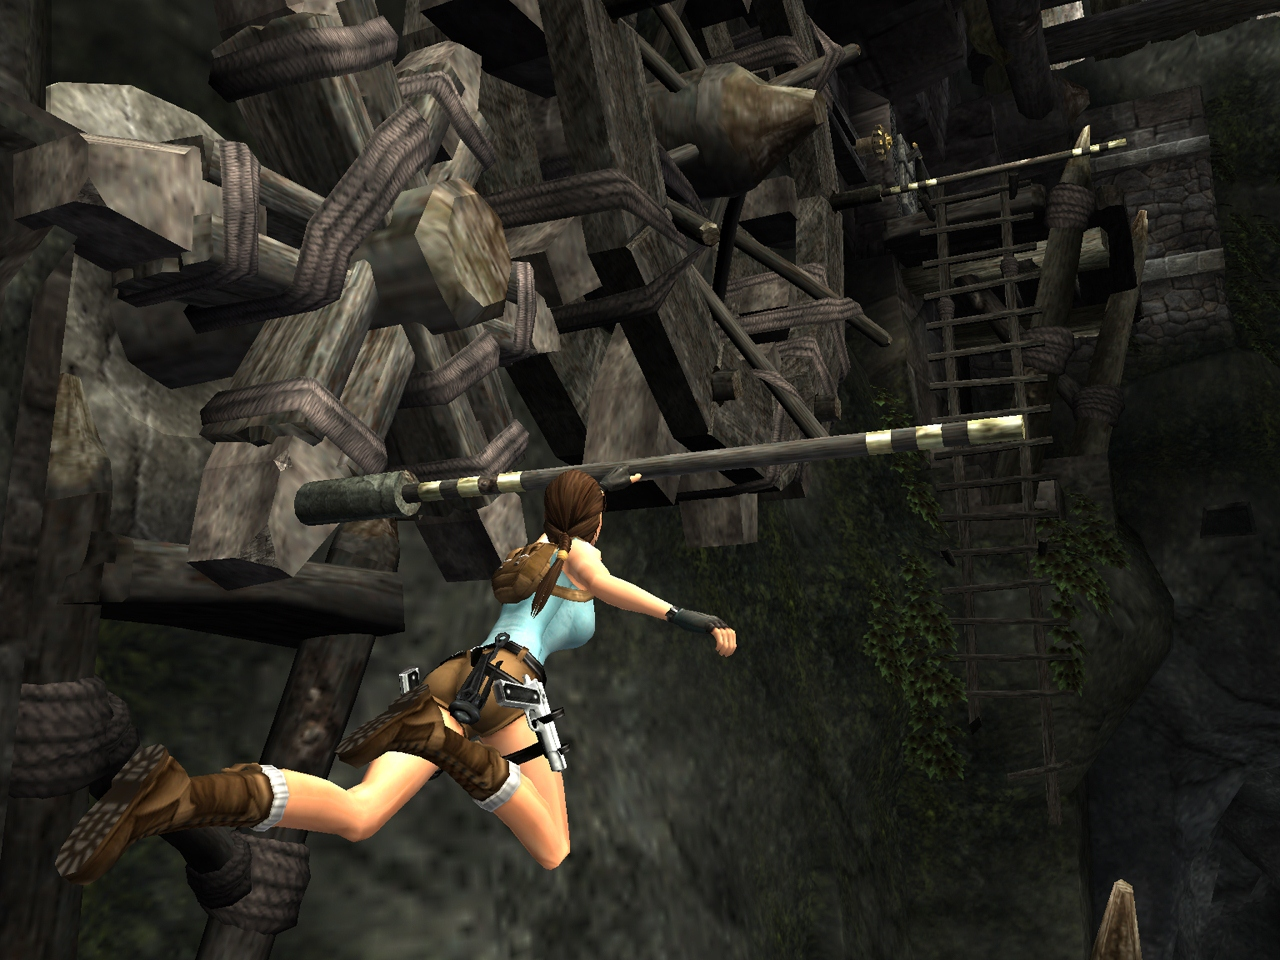 скачать игру lara croft temple of osiris